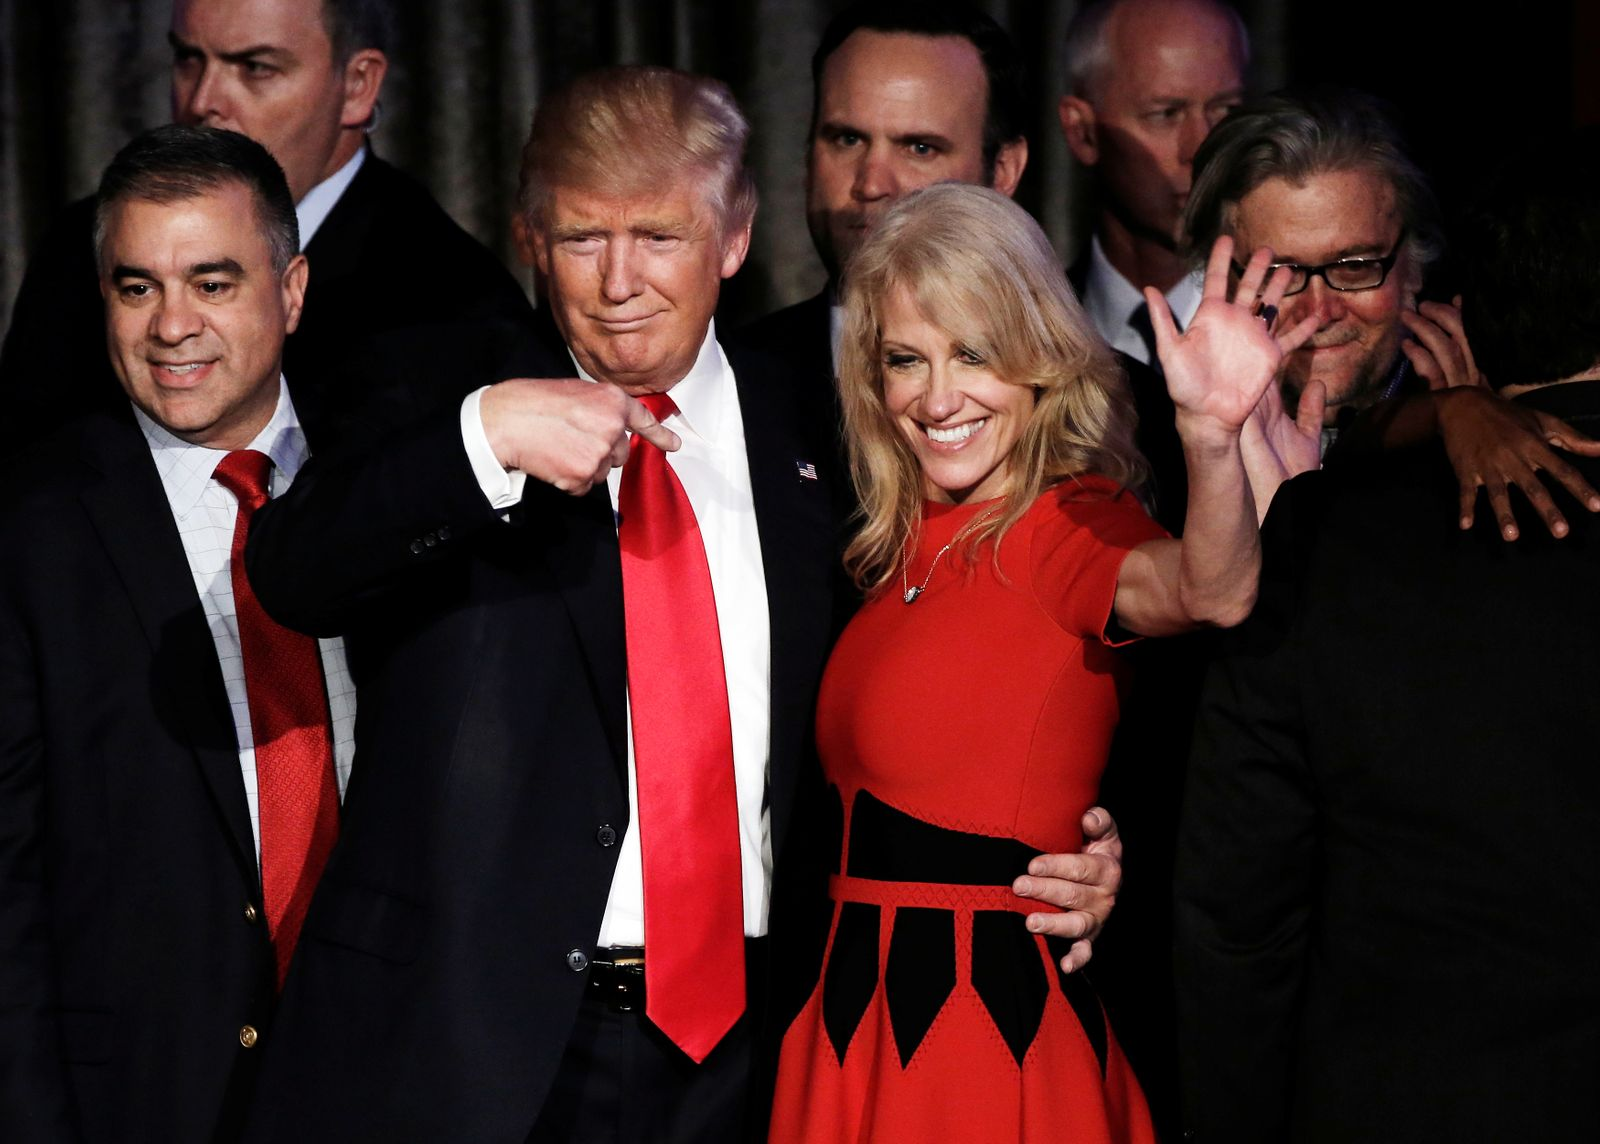 FILE PHOTO - Donald Trump and his campaign manager Kellyanne Conway greet supporters during his election night rally in Manhattan